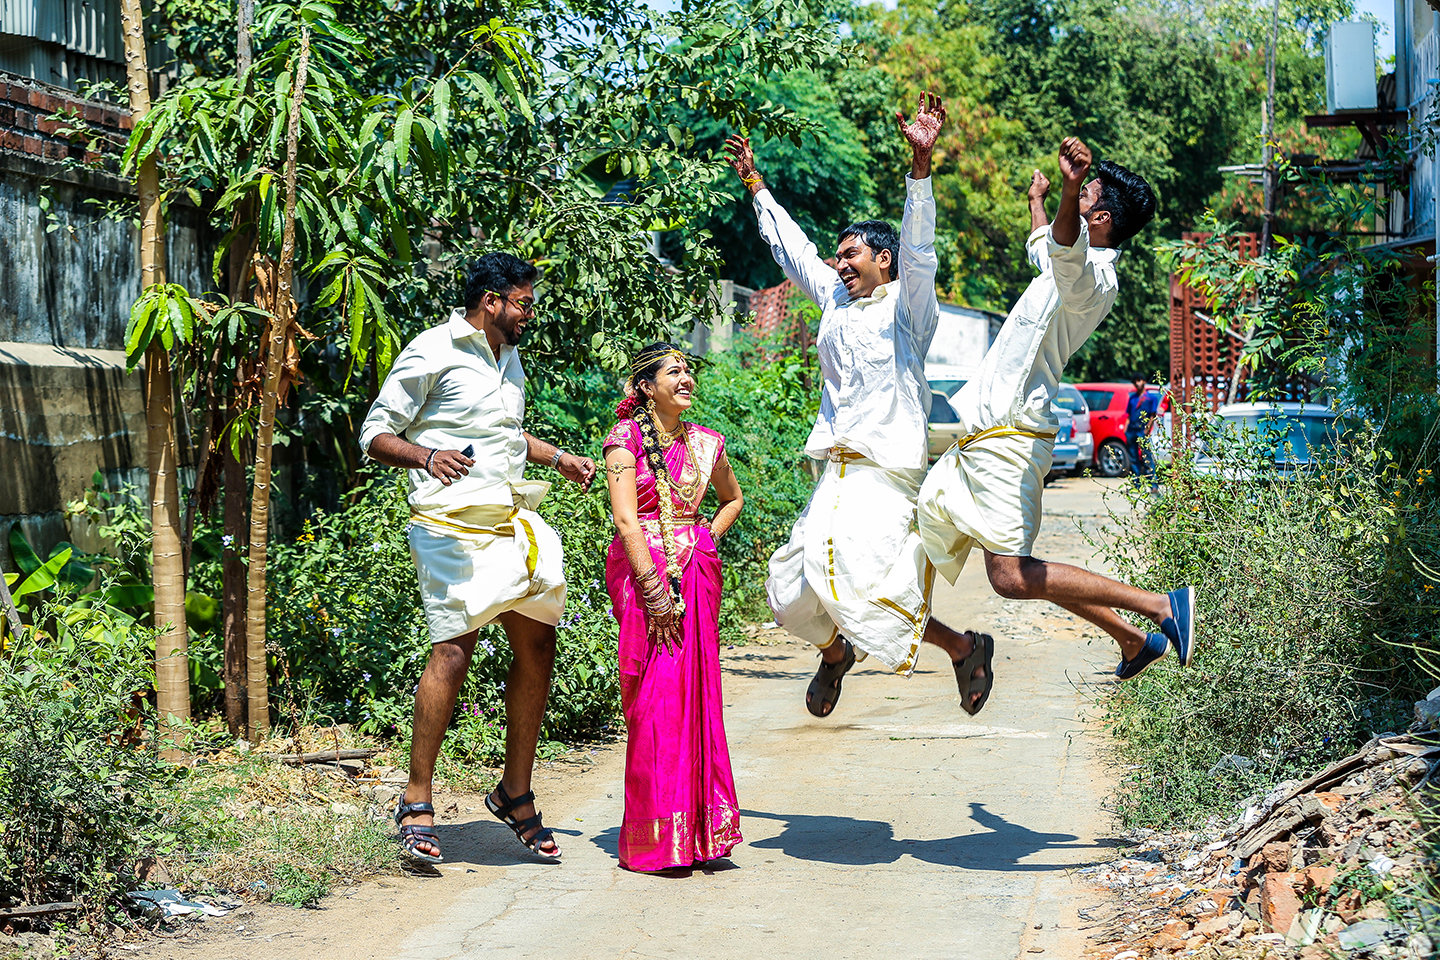 CANDID PHOTOGRAPHY @ ADDITIONAL CHARGES